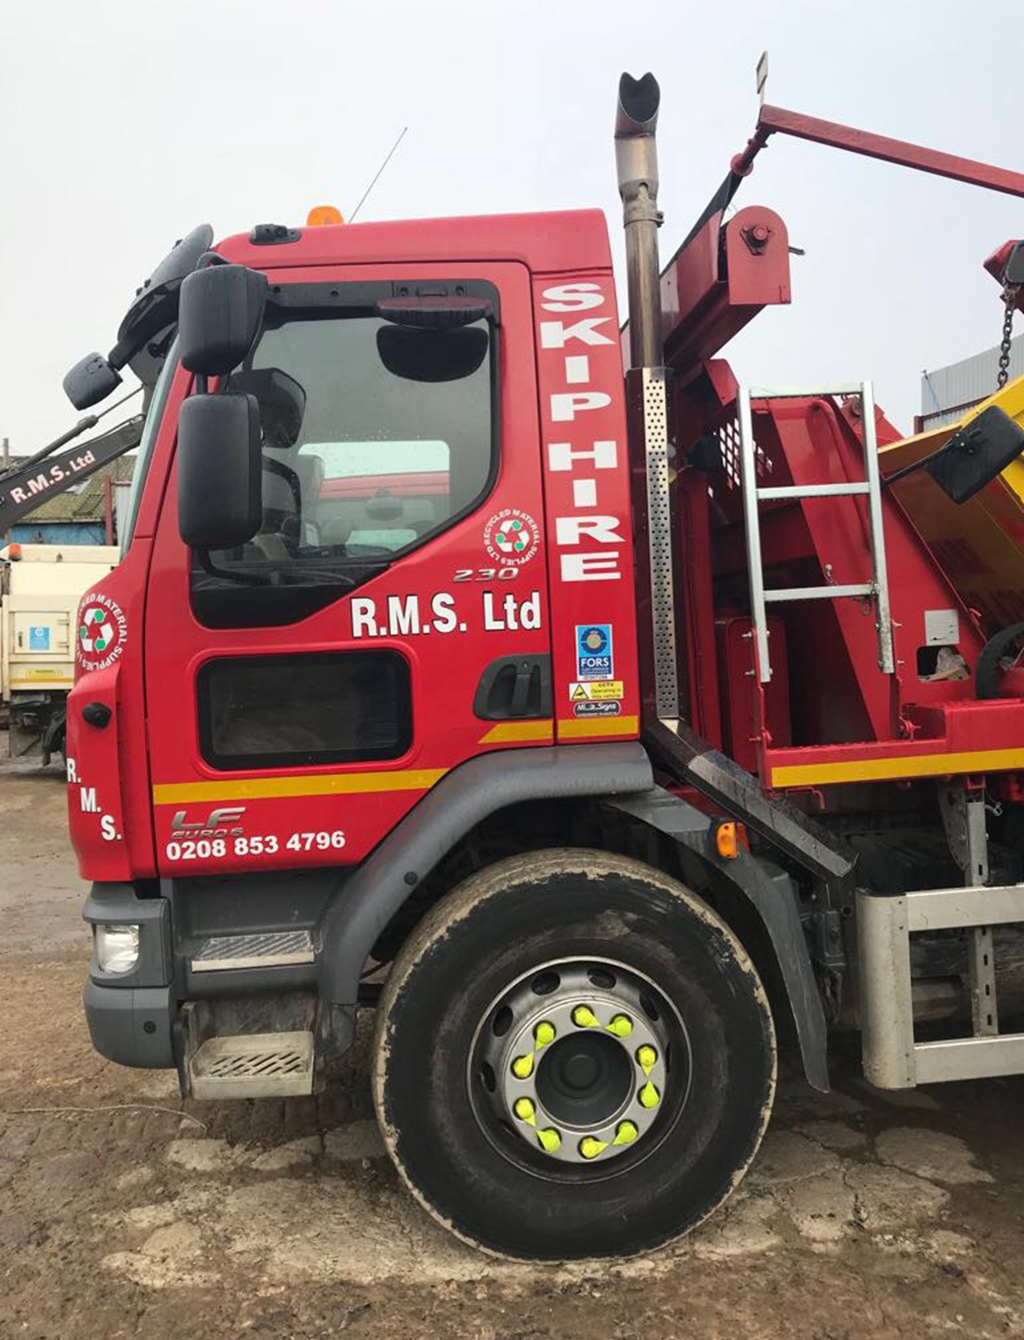 Rms Skip hire Lorry